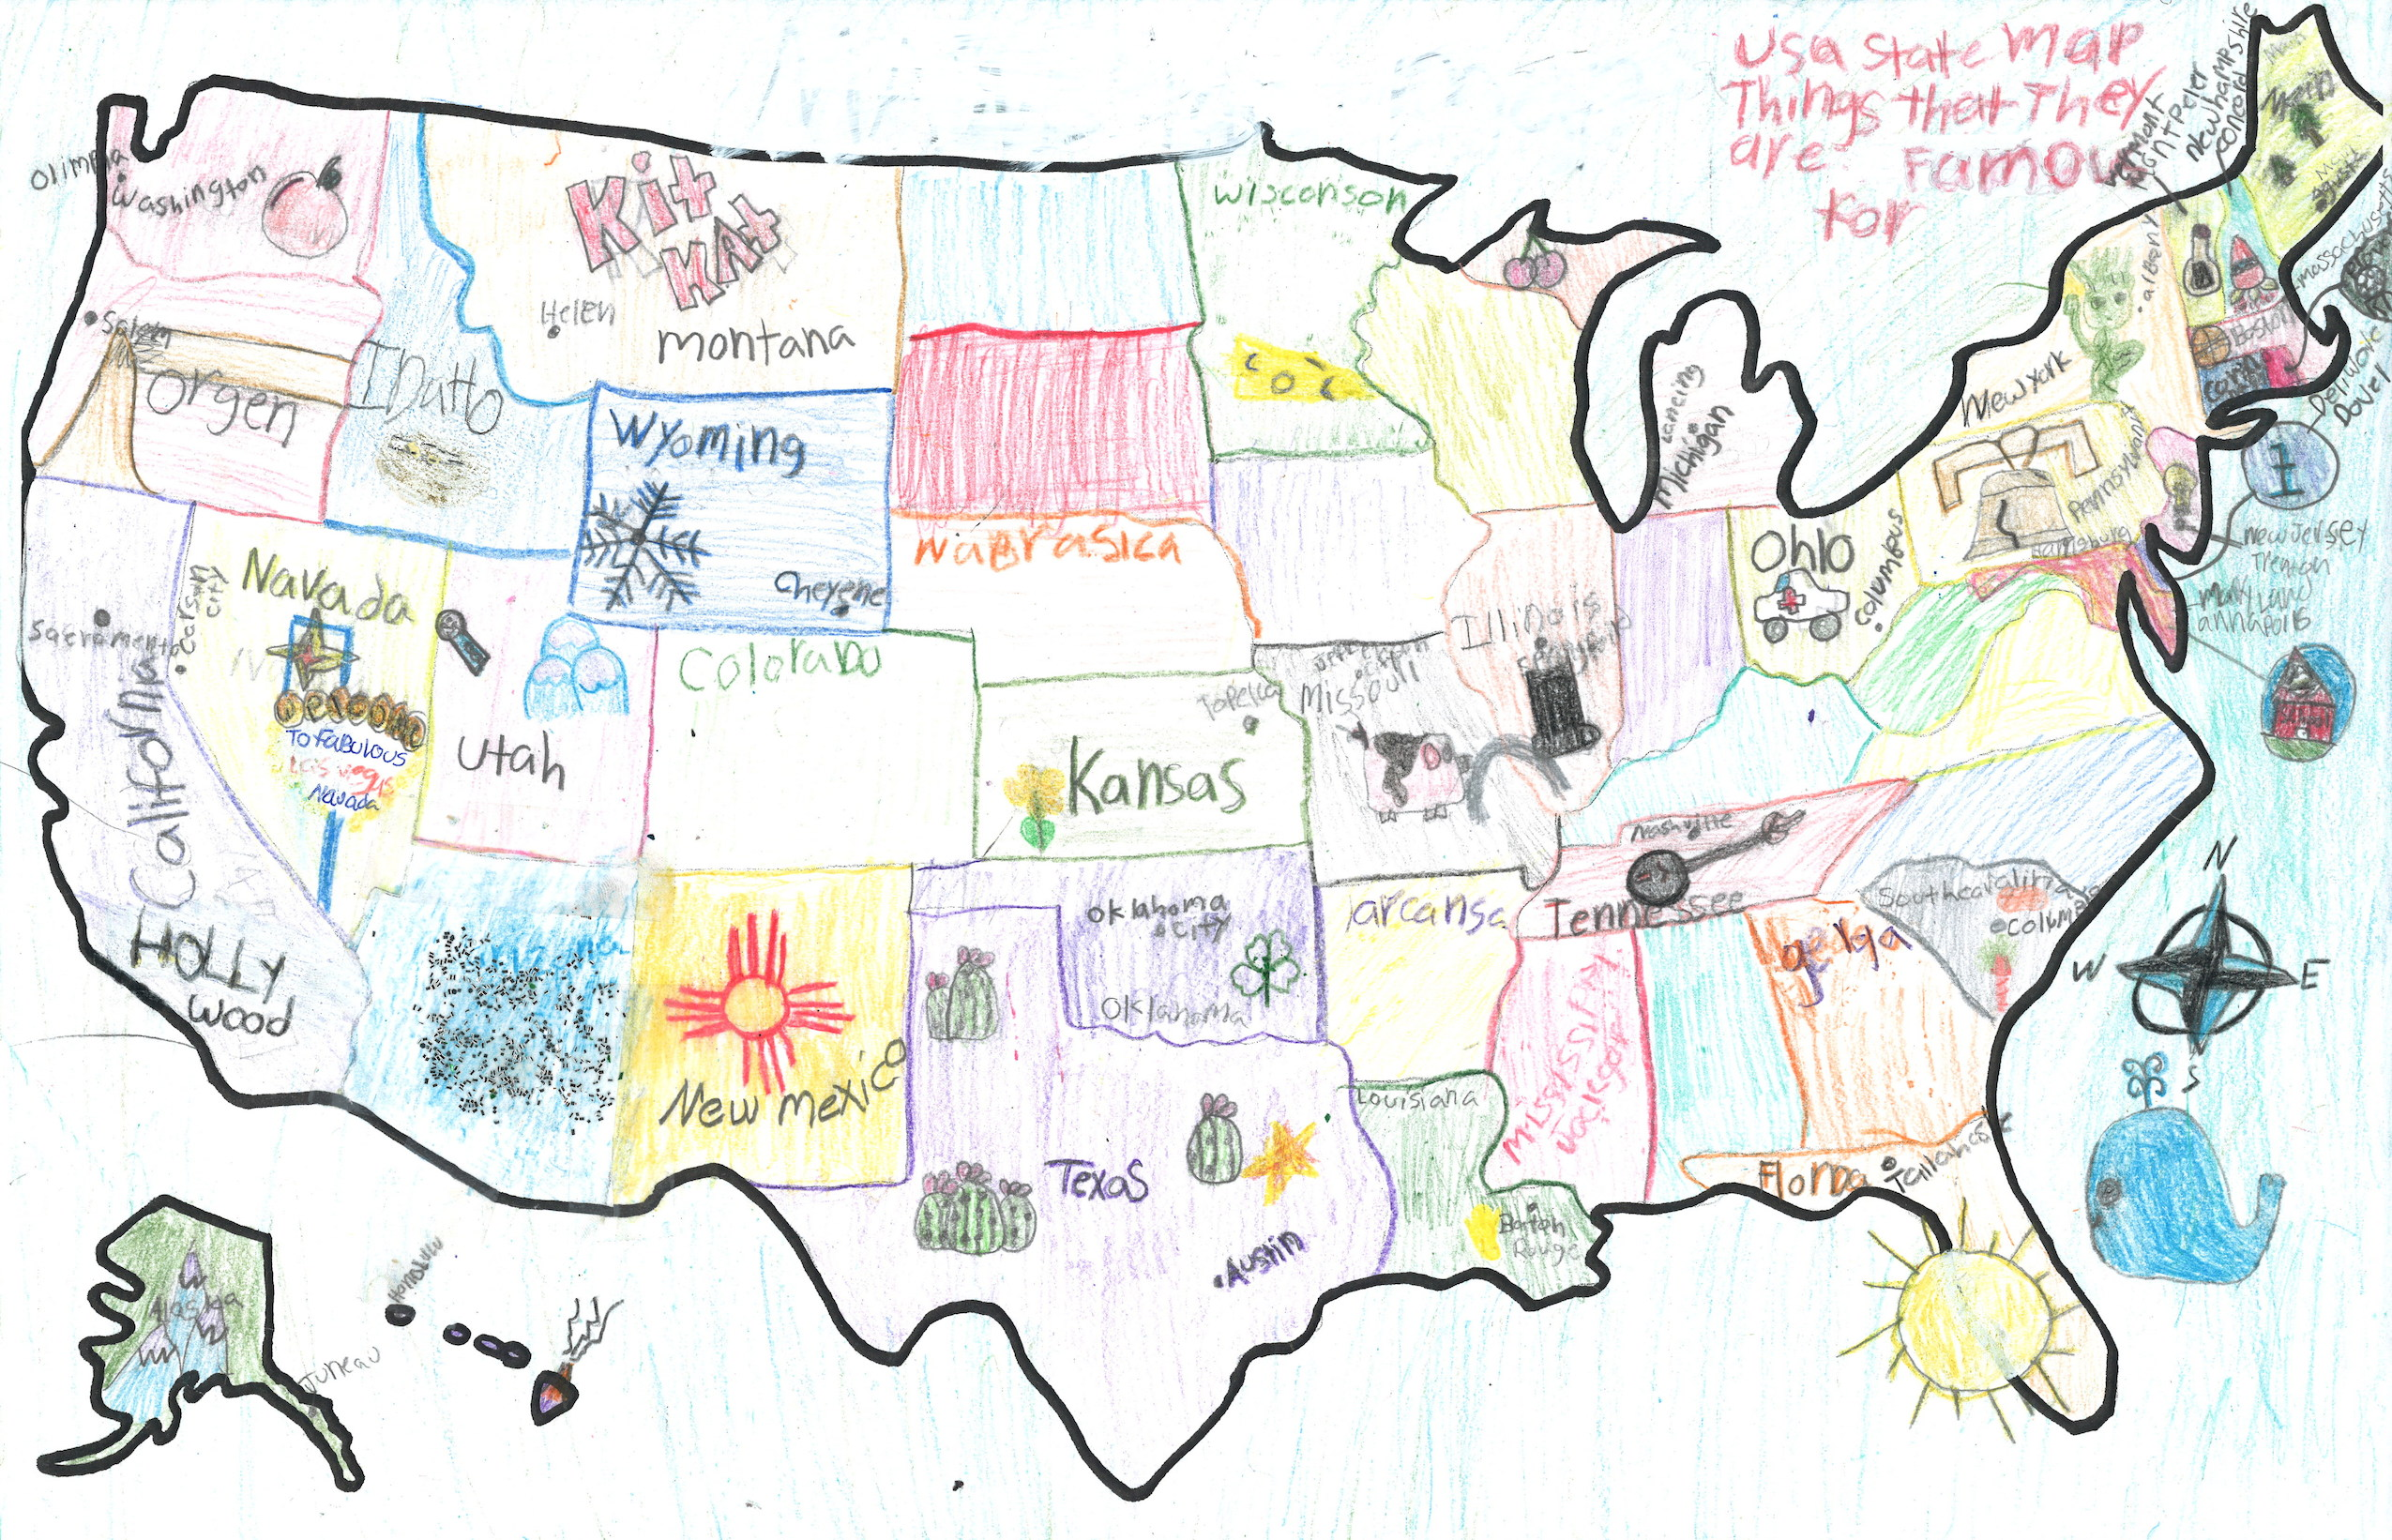 Osher Map Liry on map of states india, map usa with states, map of states kentucky, map with states listed, map of usa tourist attractions, map of states africa, map of states only, map of states germany, map of states colorado, map of native american tribes in the usa, map of states in the midwest, map of states white, map of terrorist groups in the usa, map of colleges by state, map of senators by state, map of states new york, map of states south america, map of religion in the usa, map of indian reservations in the usa,